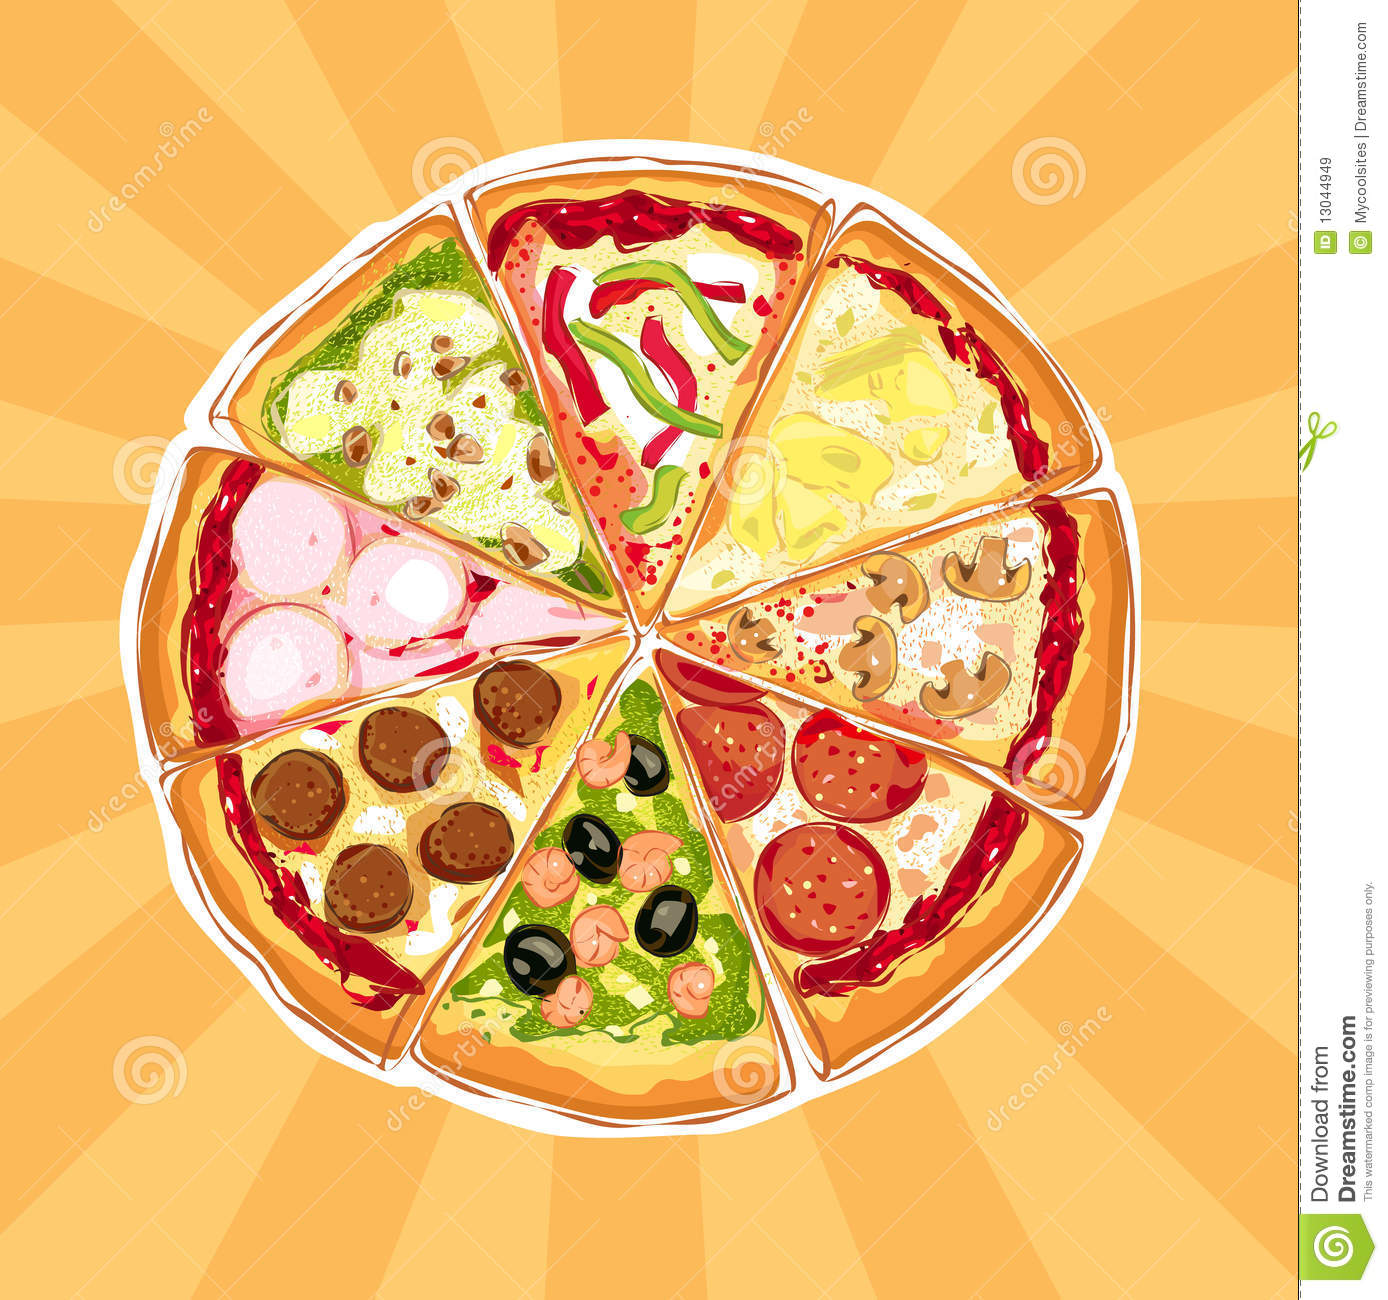 Pizza Pie Royalty Free Stock Images Image 13044949